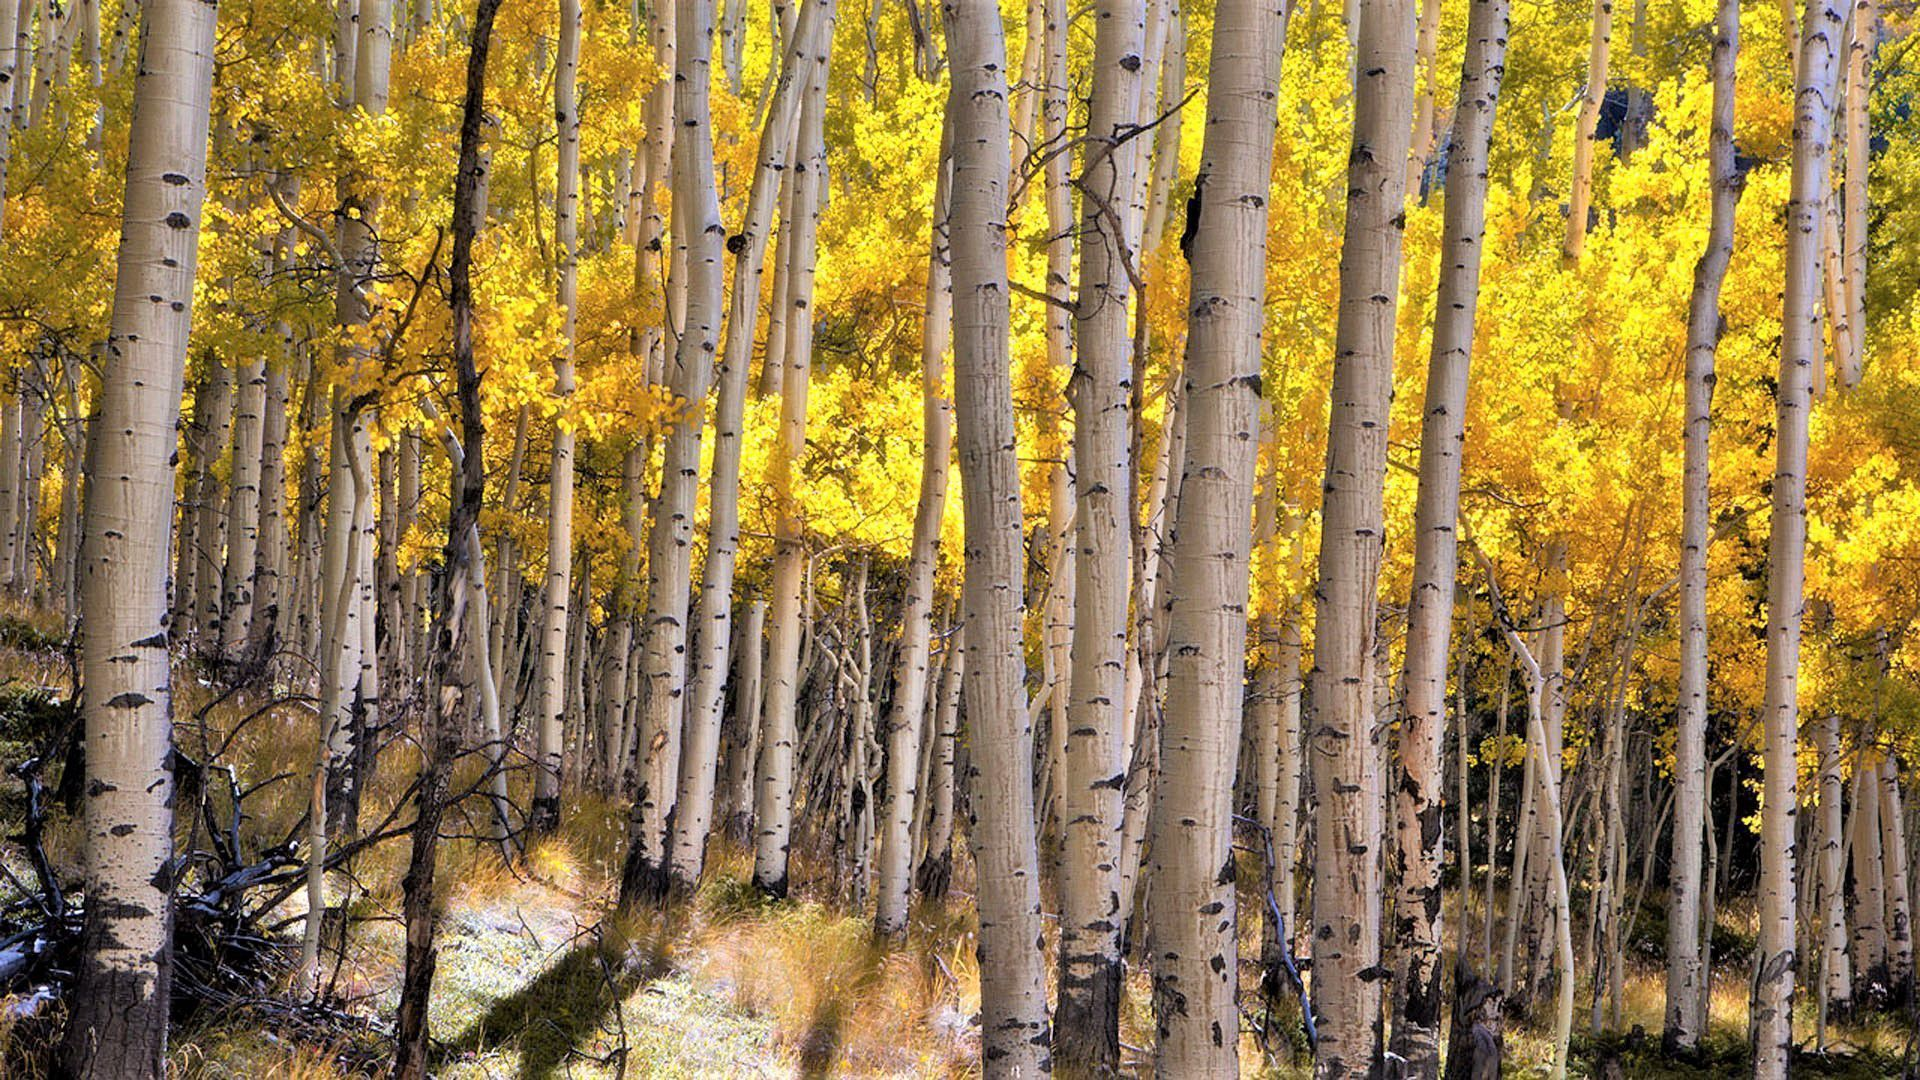 Autumn In A Birch Grove Wallpaper